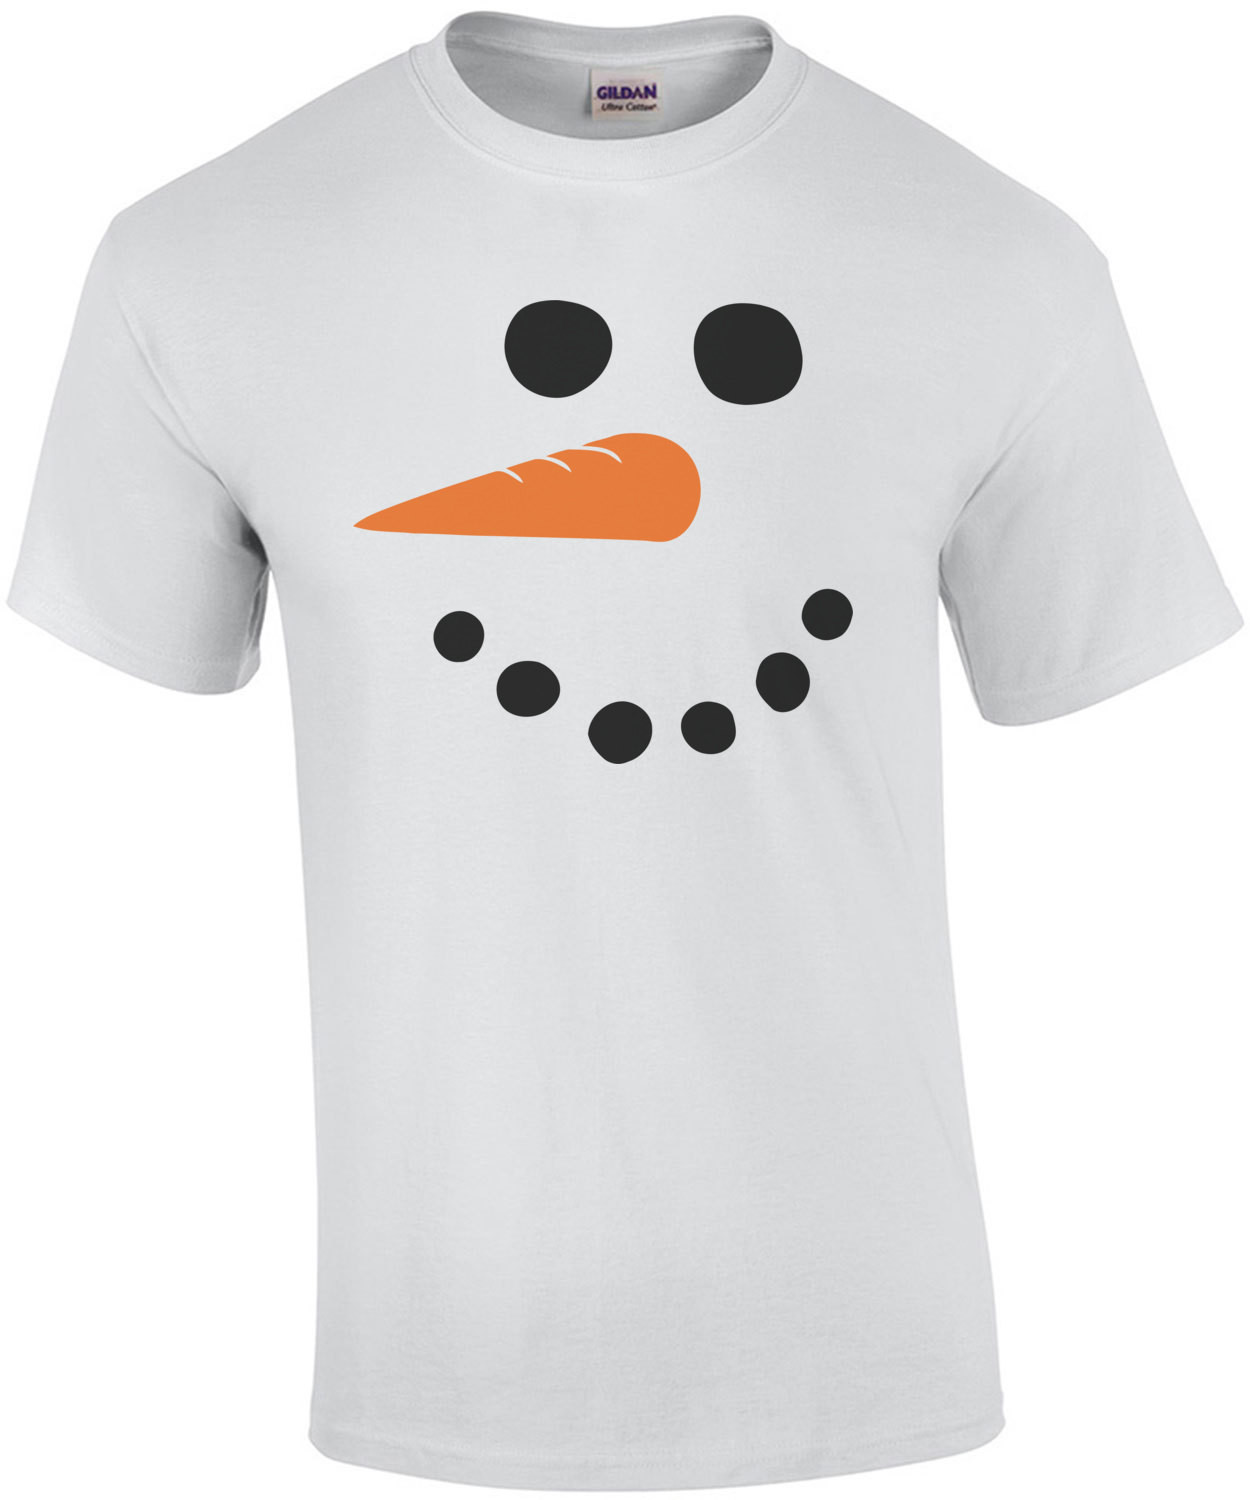 Funny And Cute Kid's Snowman T-shirt